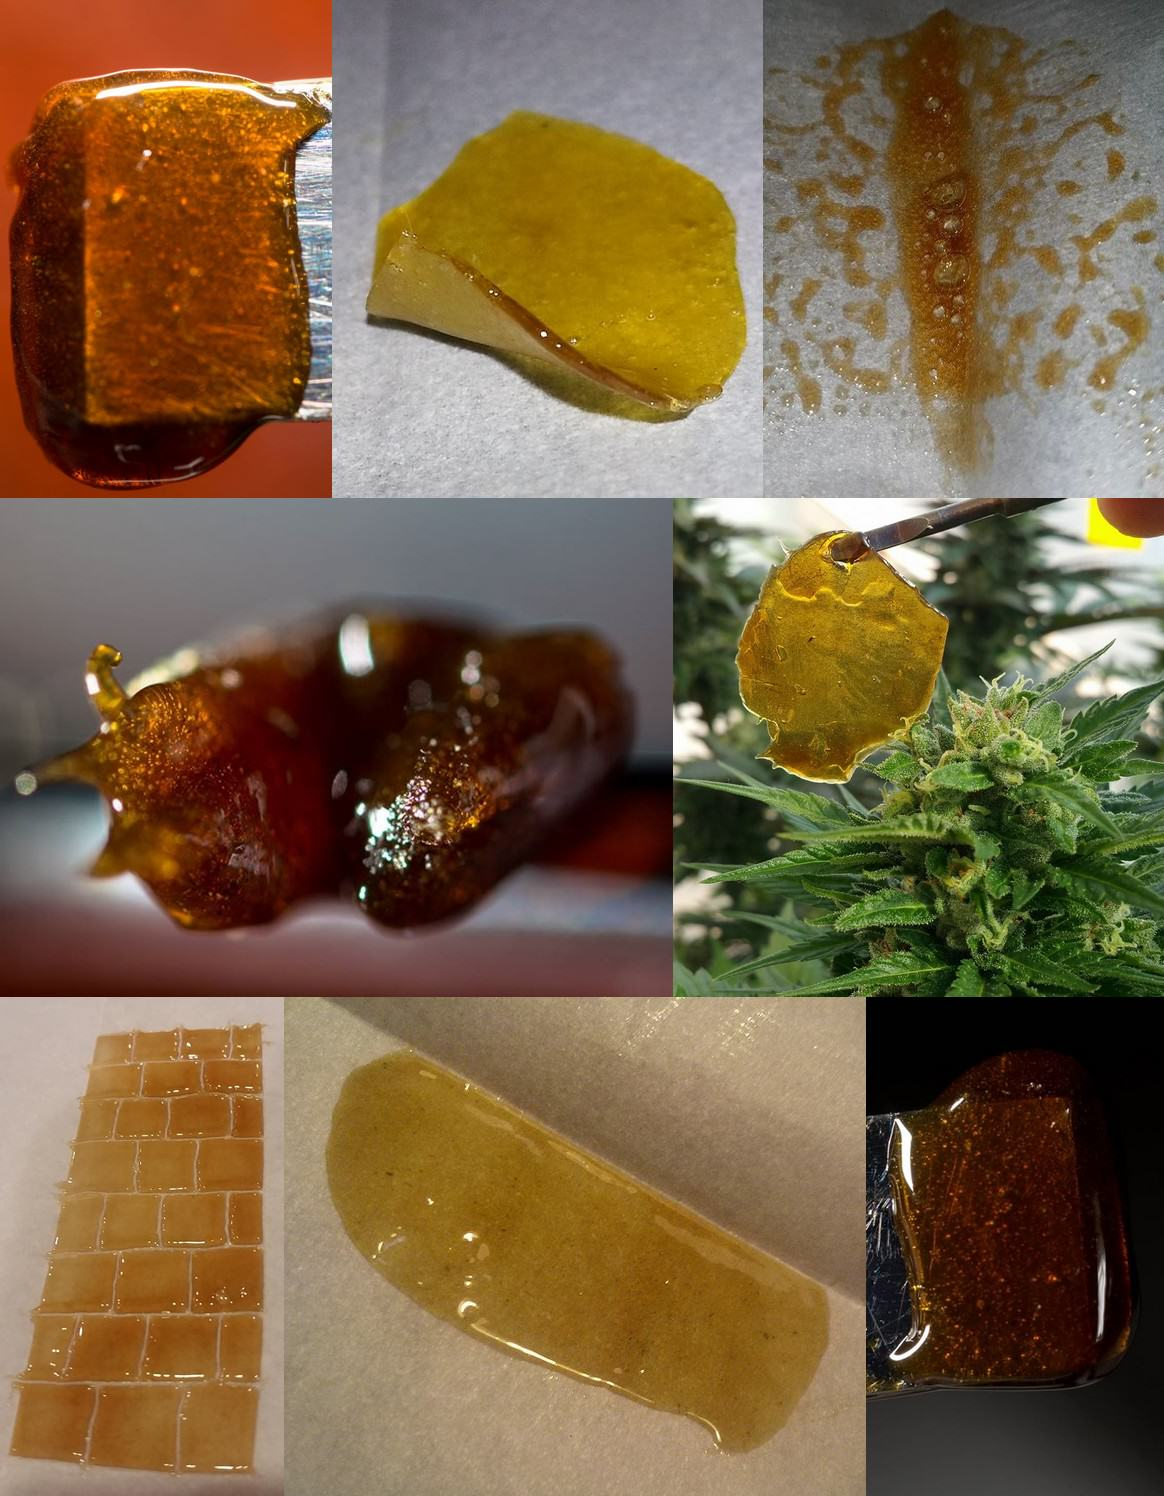 live resin bho how to make